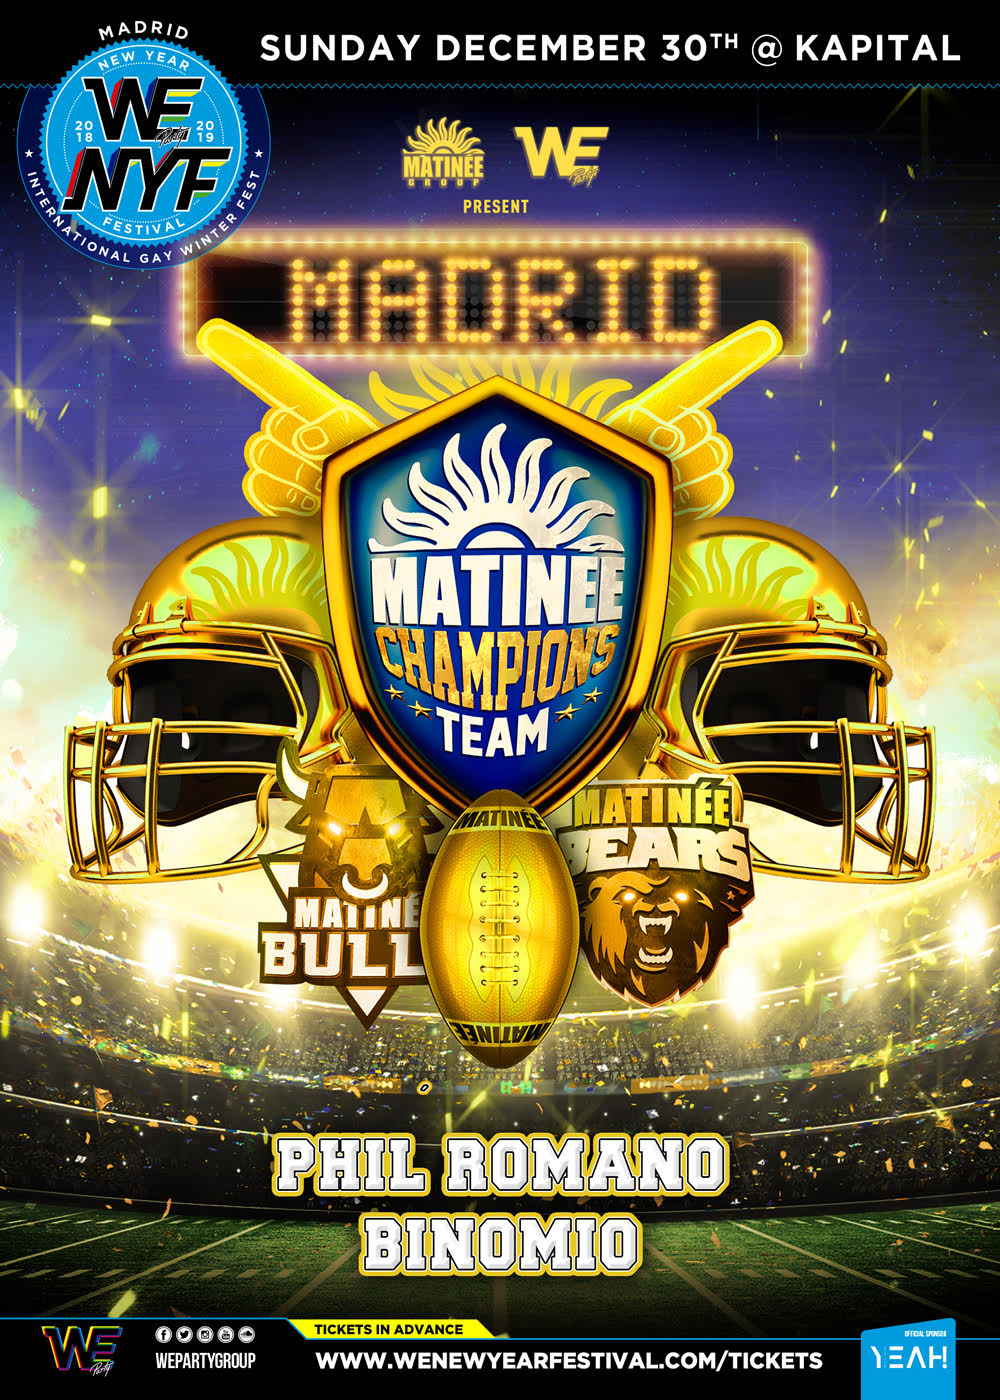 30-12-matinee-champions-team-normal-vip-